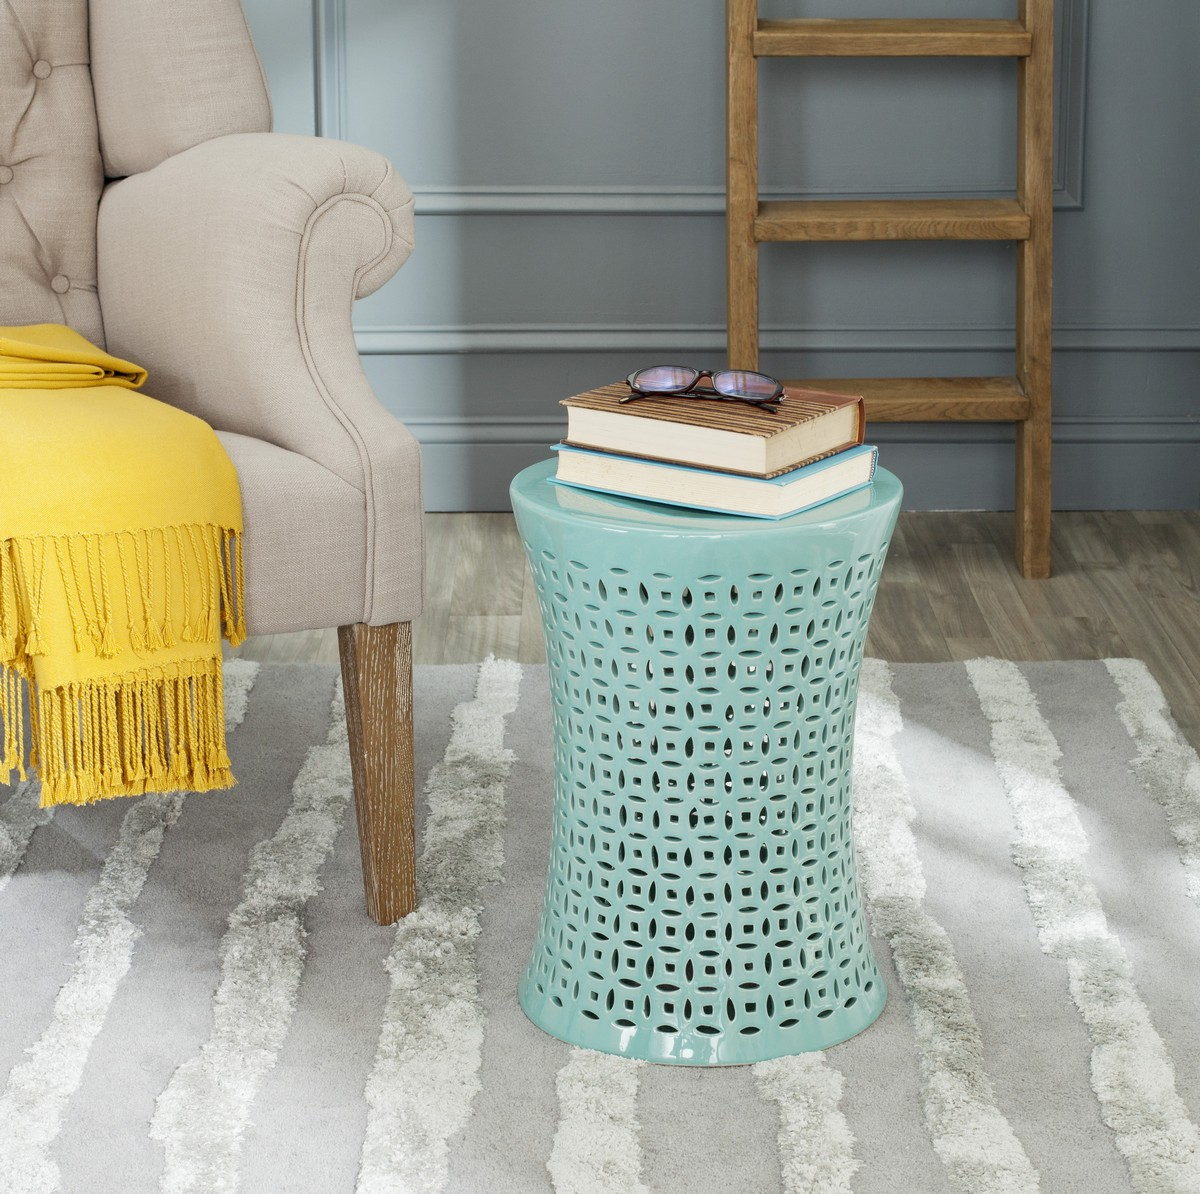 garden stools safavieh room stool accent table camilla design moroccan half round with drawers kmart camping wicker furniture white and brown end shaped promo code mirrored